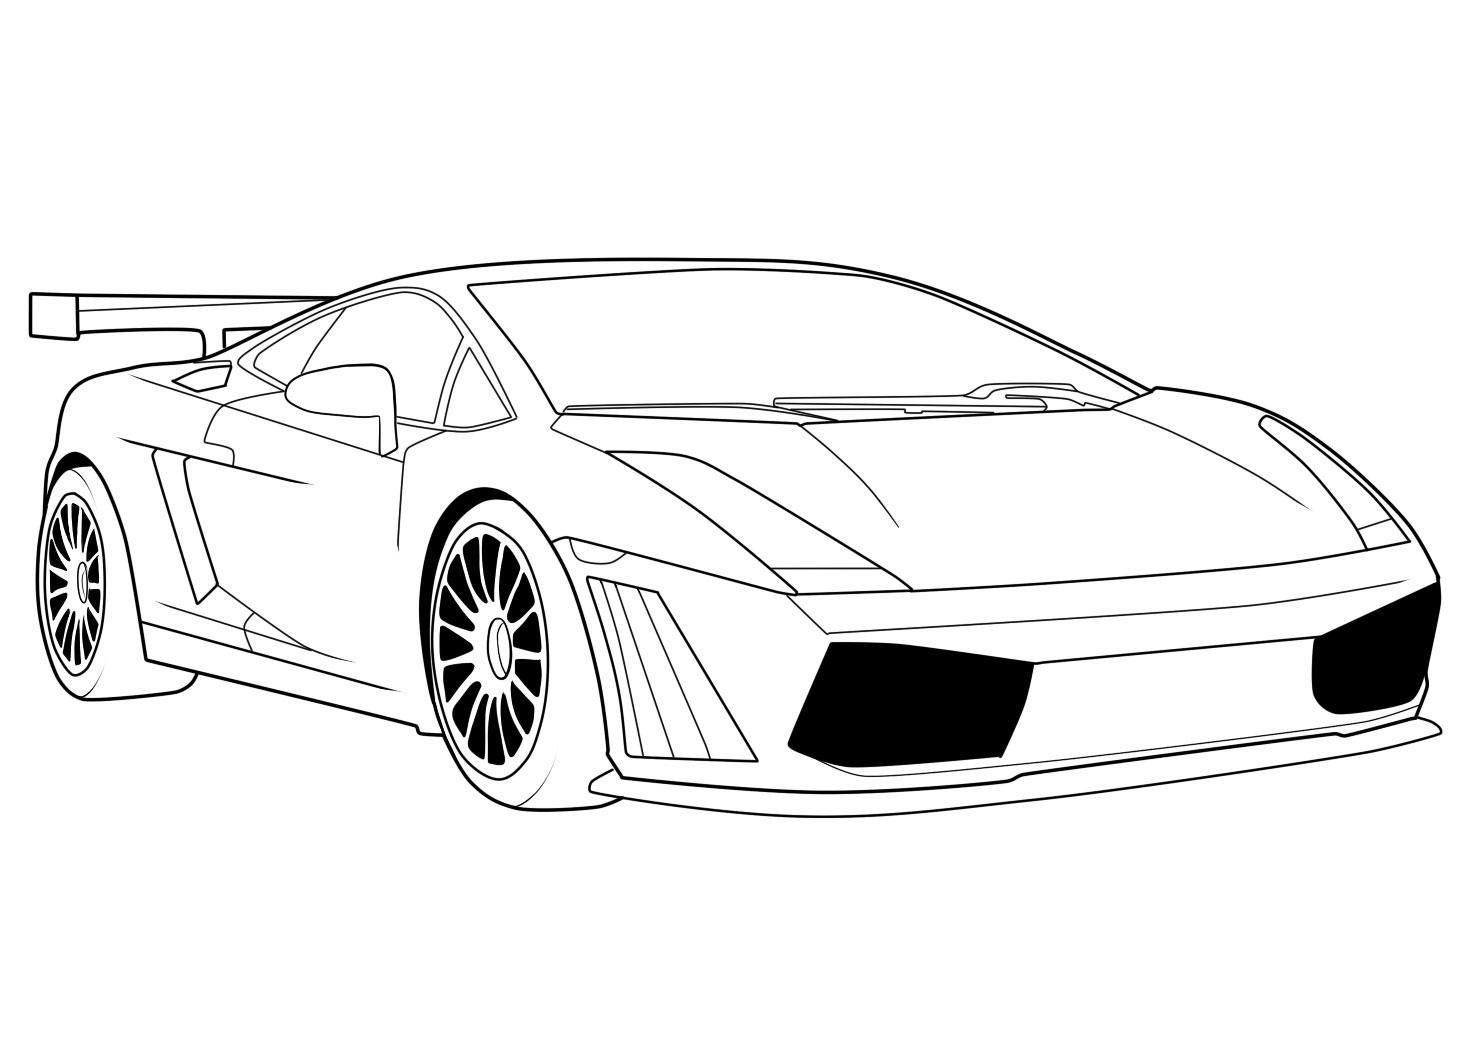 Car Coloring Pages Ideas For Kid And Teenager   Coloring